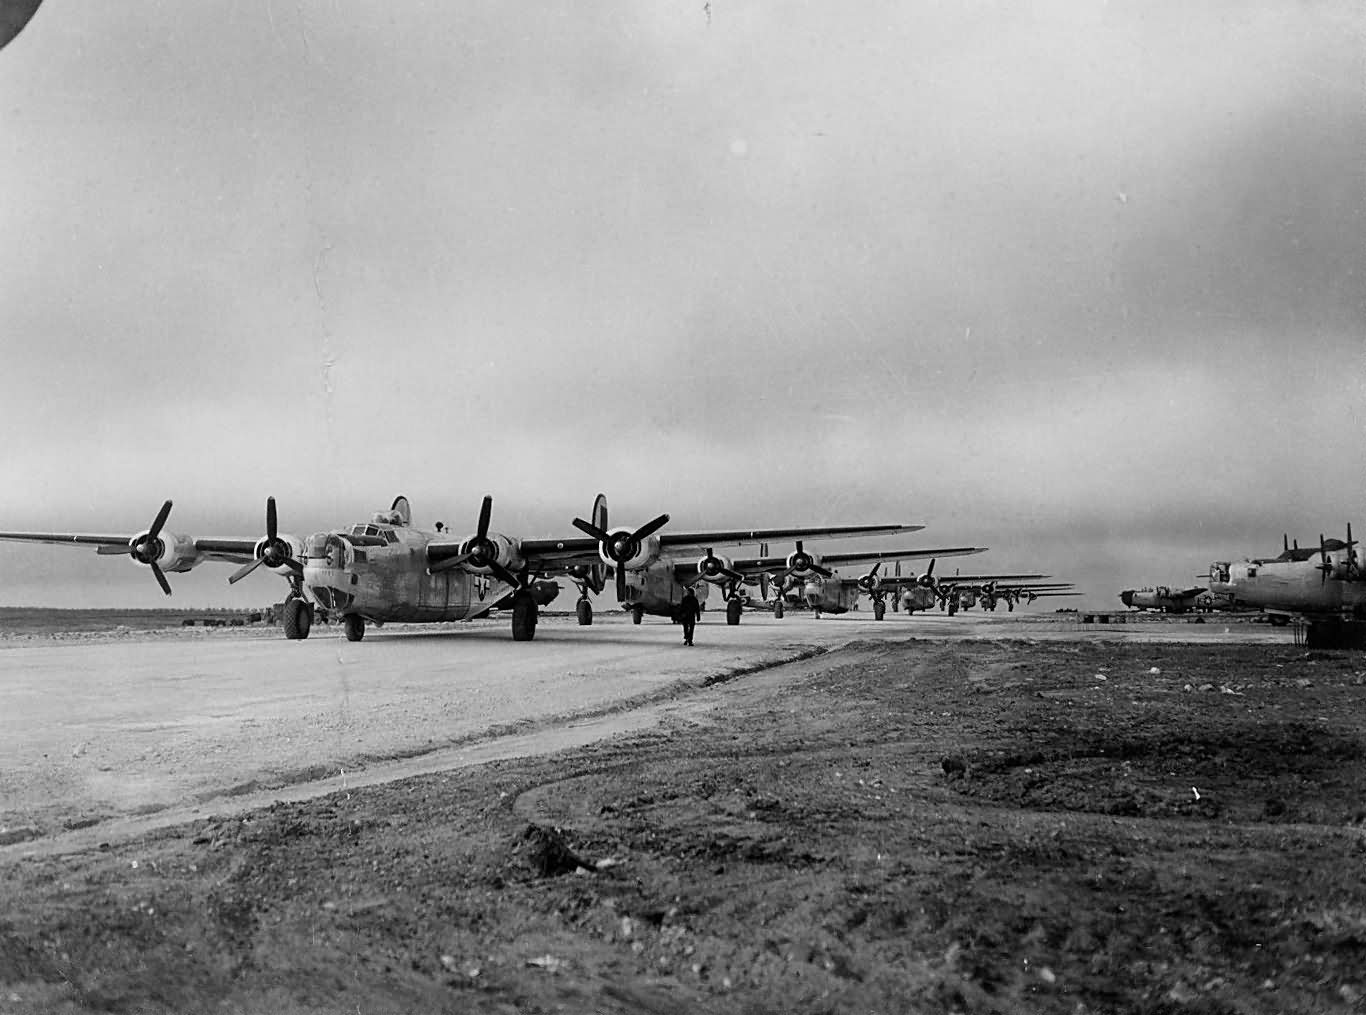 Naughty November Bombing run! - Page 3 460th_Bomb_Group_760th_BS_B-24_Liberators_Take_Off_Spinazzola_Italy